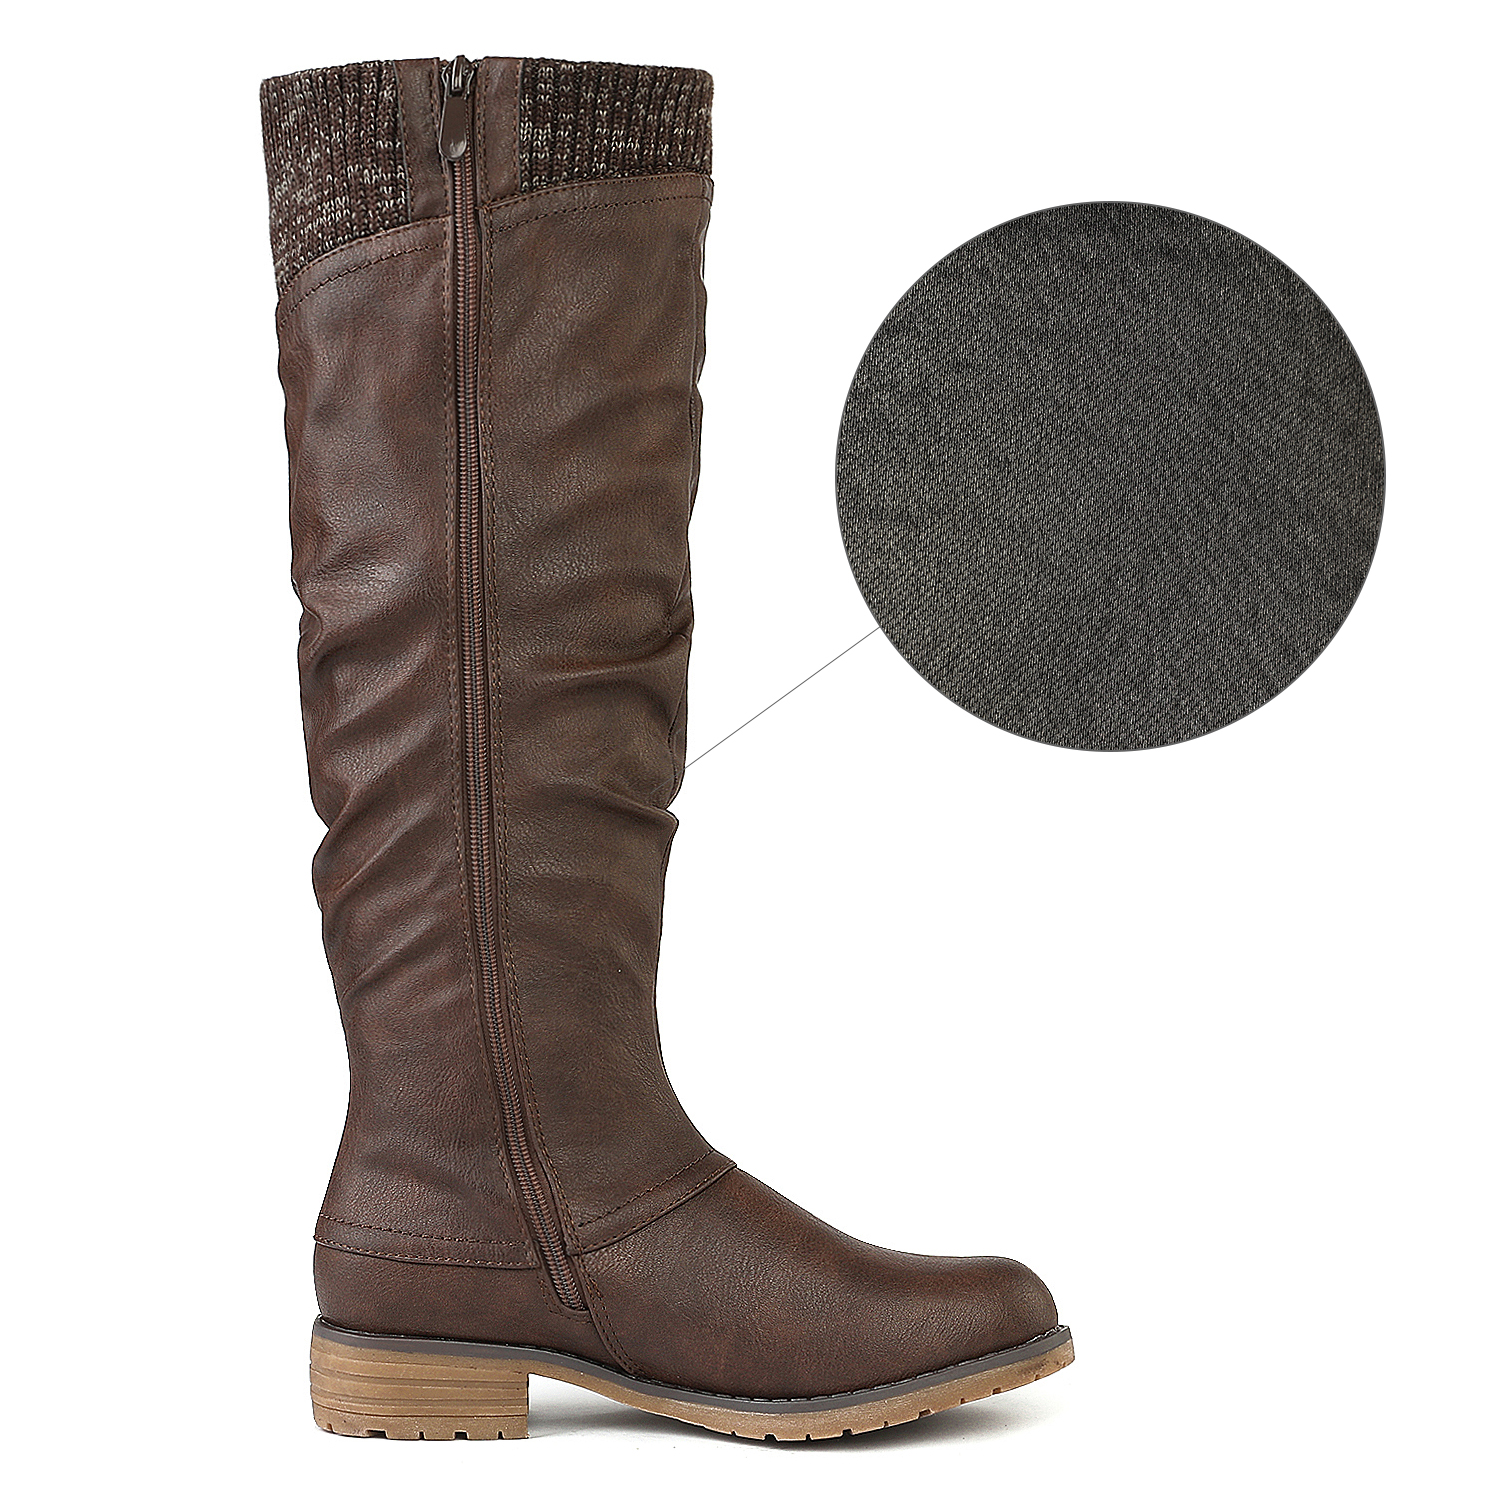 DREAM-PAIRS-Womens-DEPP-Cowgirl-Soft-PU-Leather-Combat-Knee-High-Riding-Boots thumbnail 14